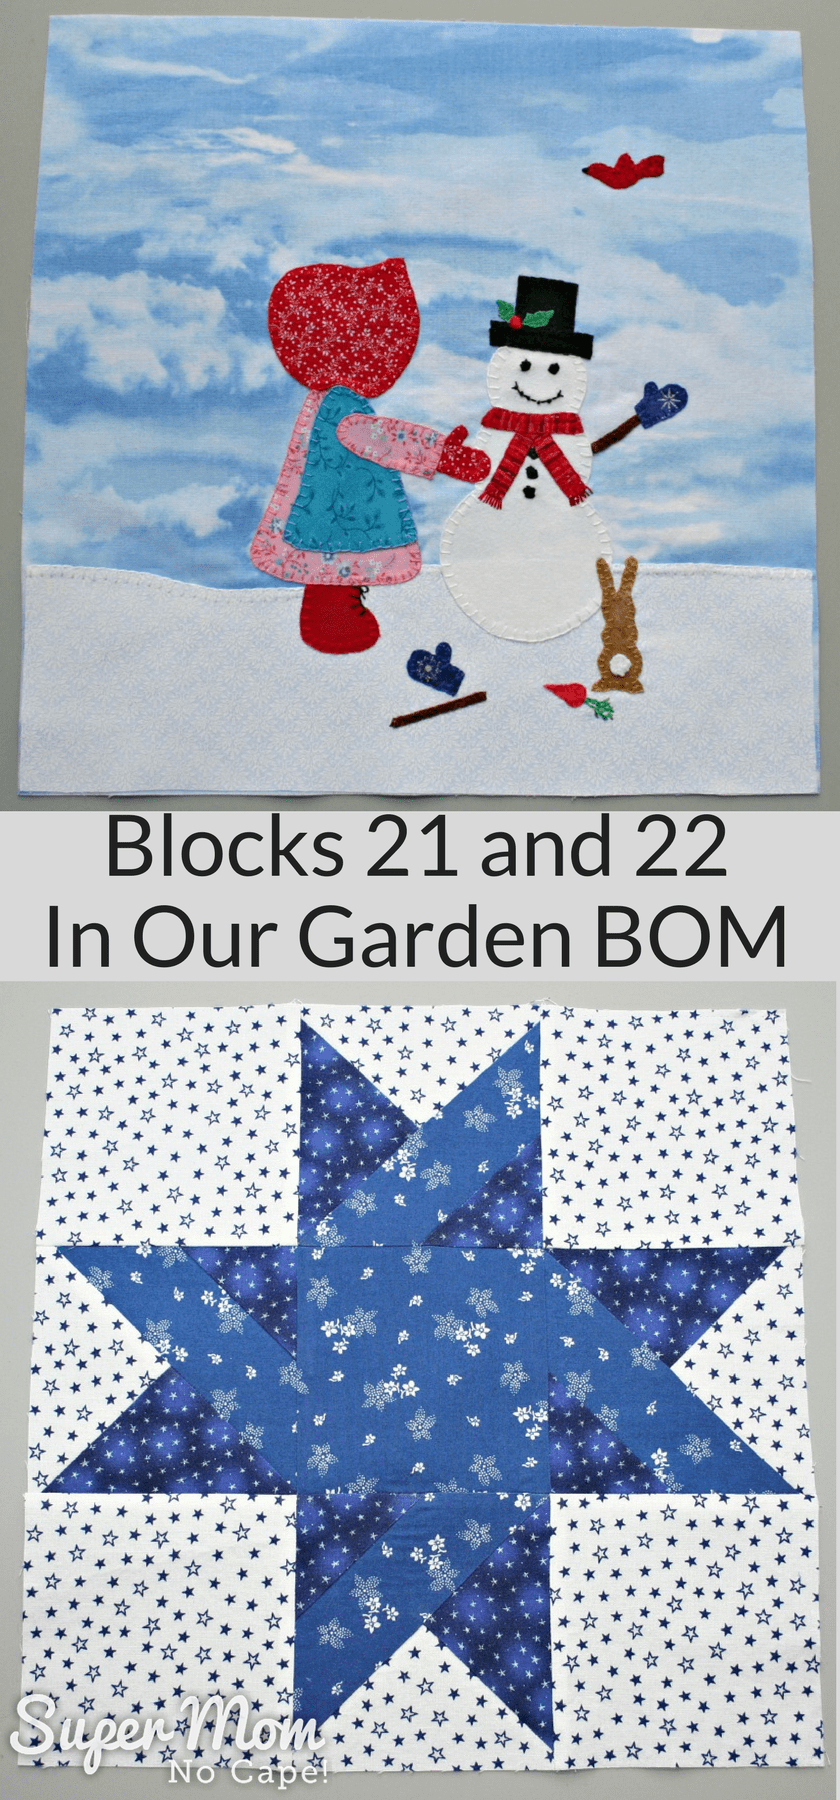 Blocks 21 and 22 - In Our Garden BOM 2016